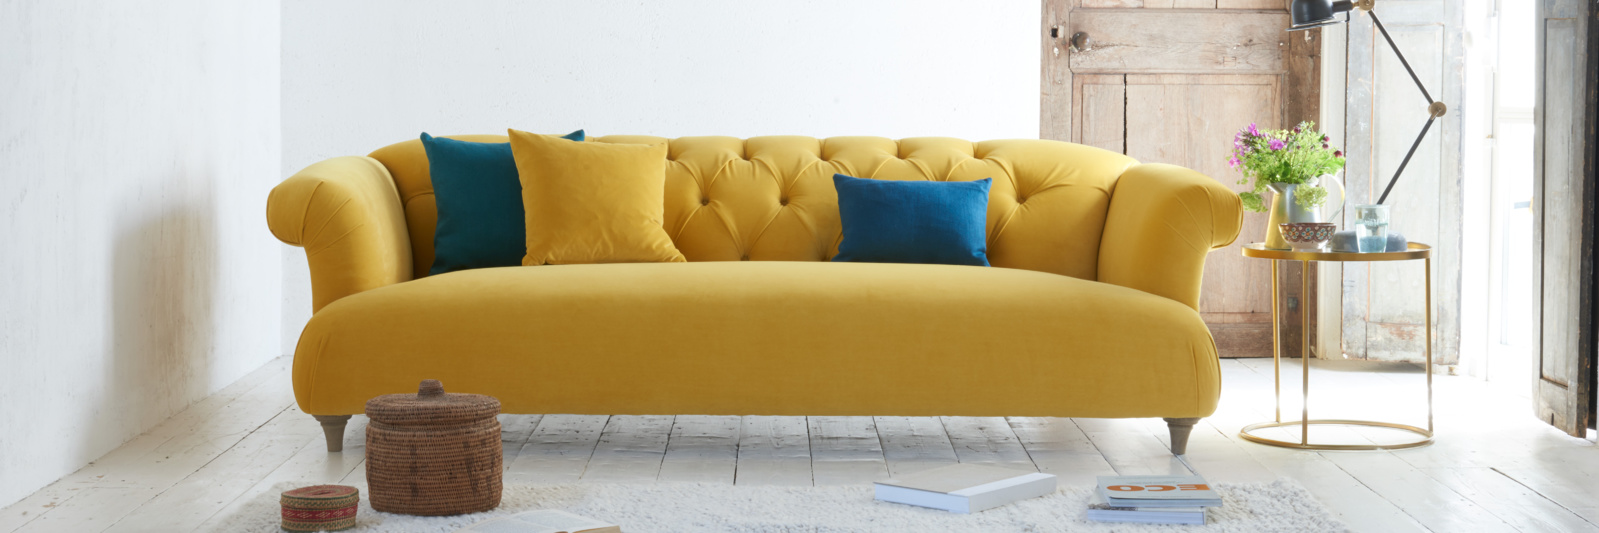 Dixie yellow velvet sofa